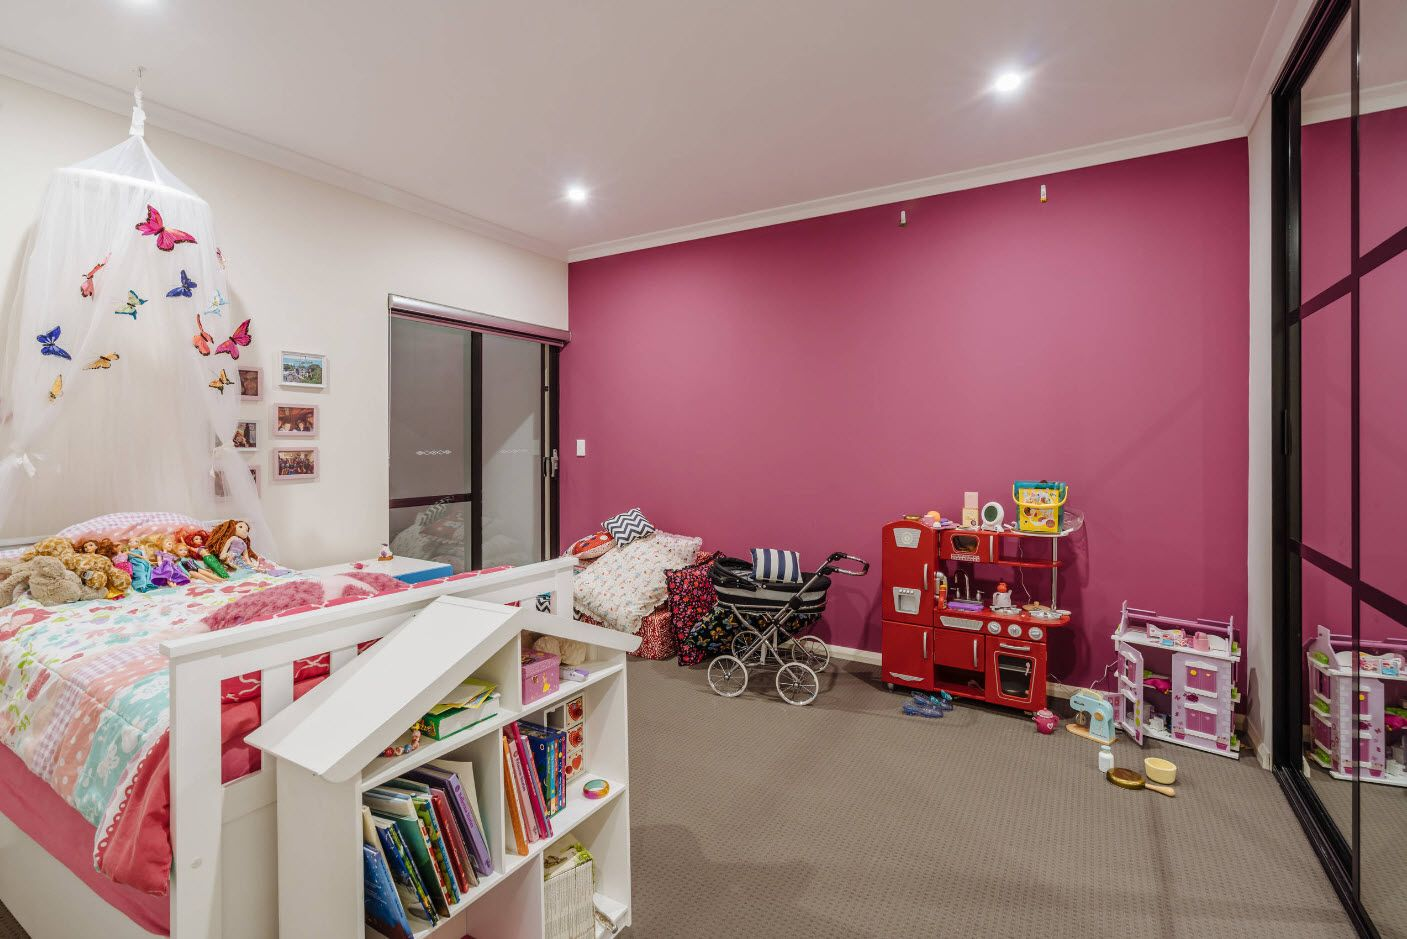 Accent raspberry colored wall in the kids' room